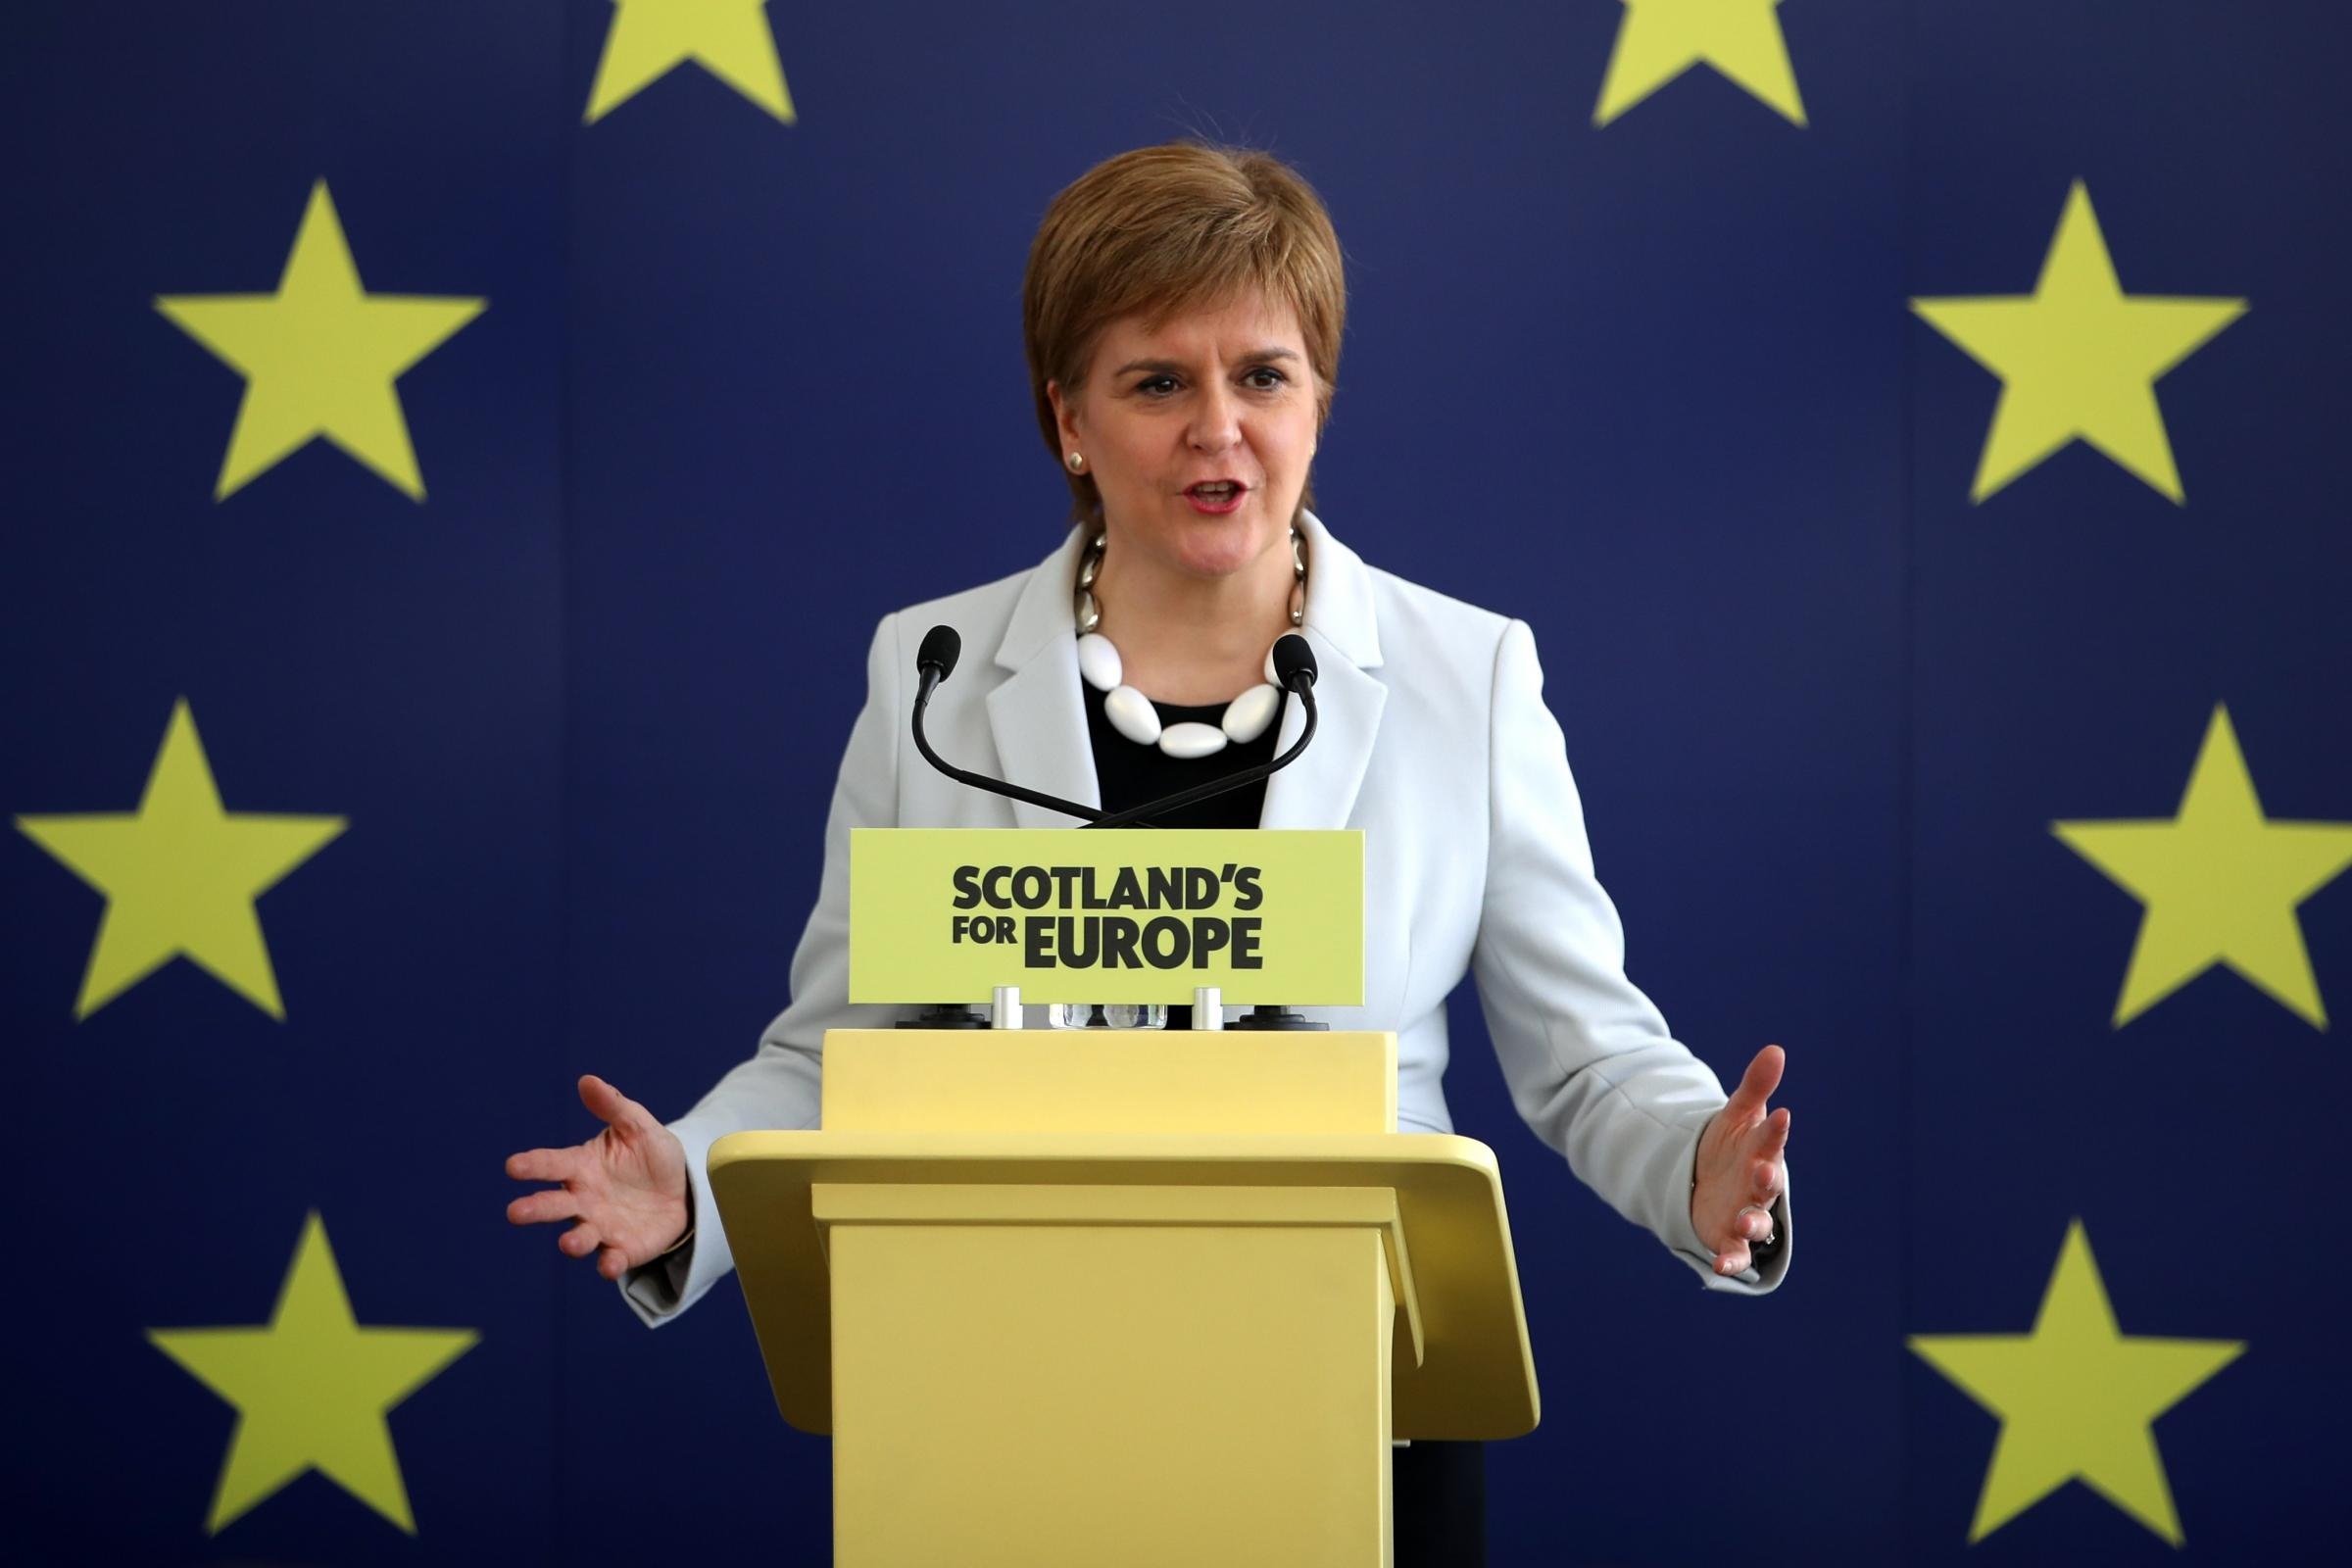 SNP European election campaign